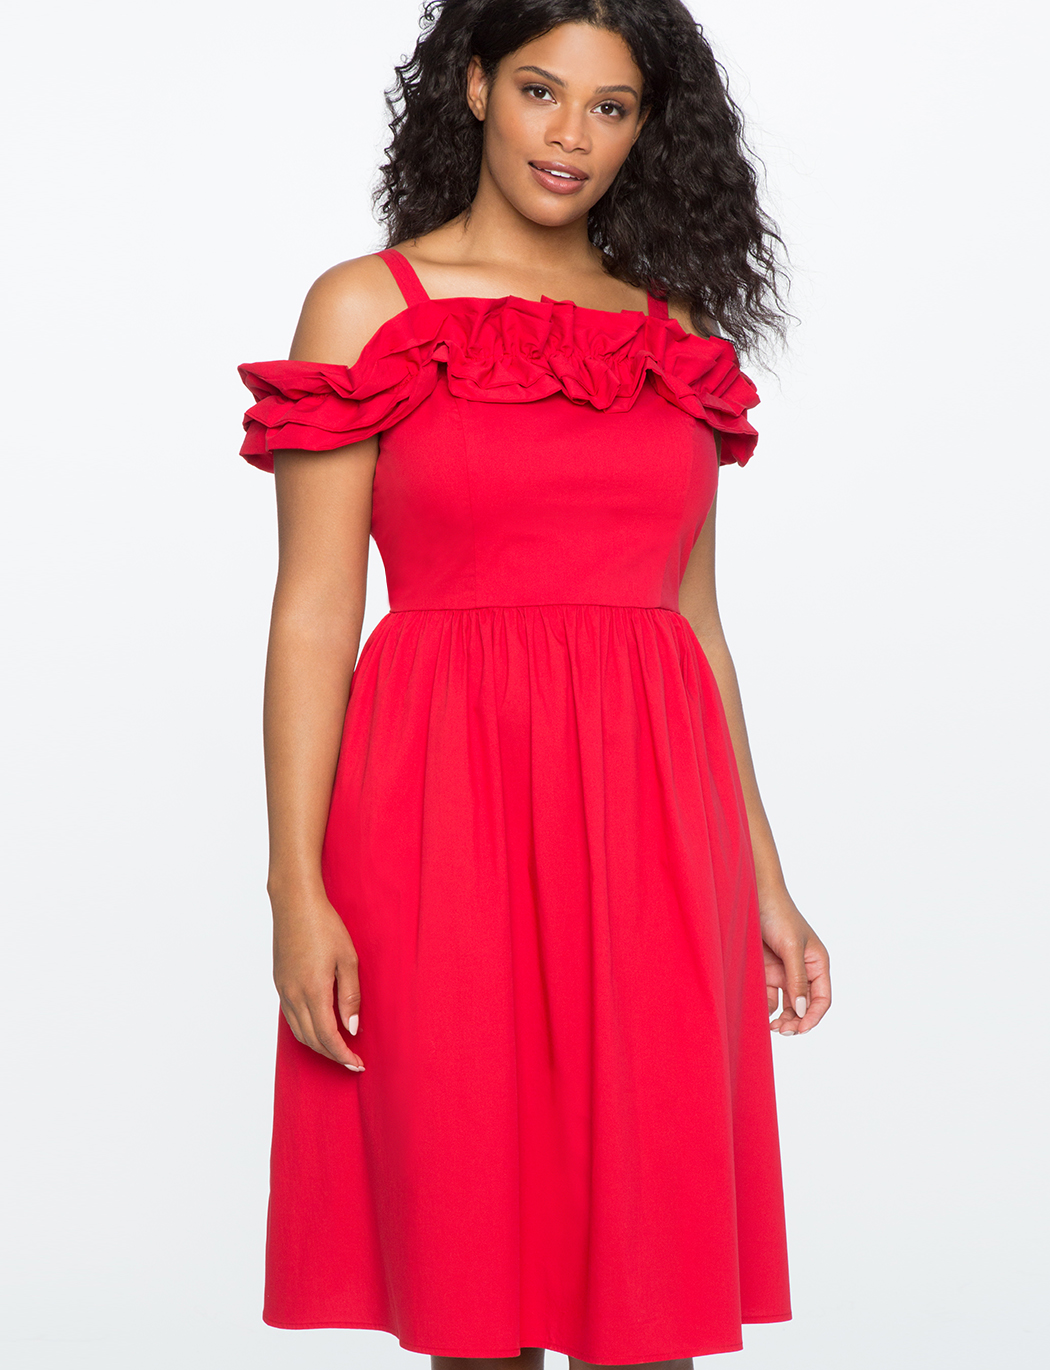 Ruffle Detail Fit and Flare Dress